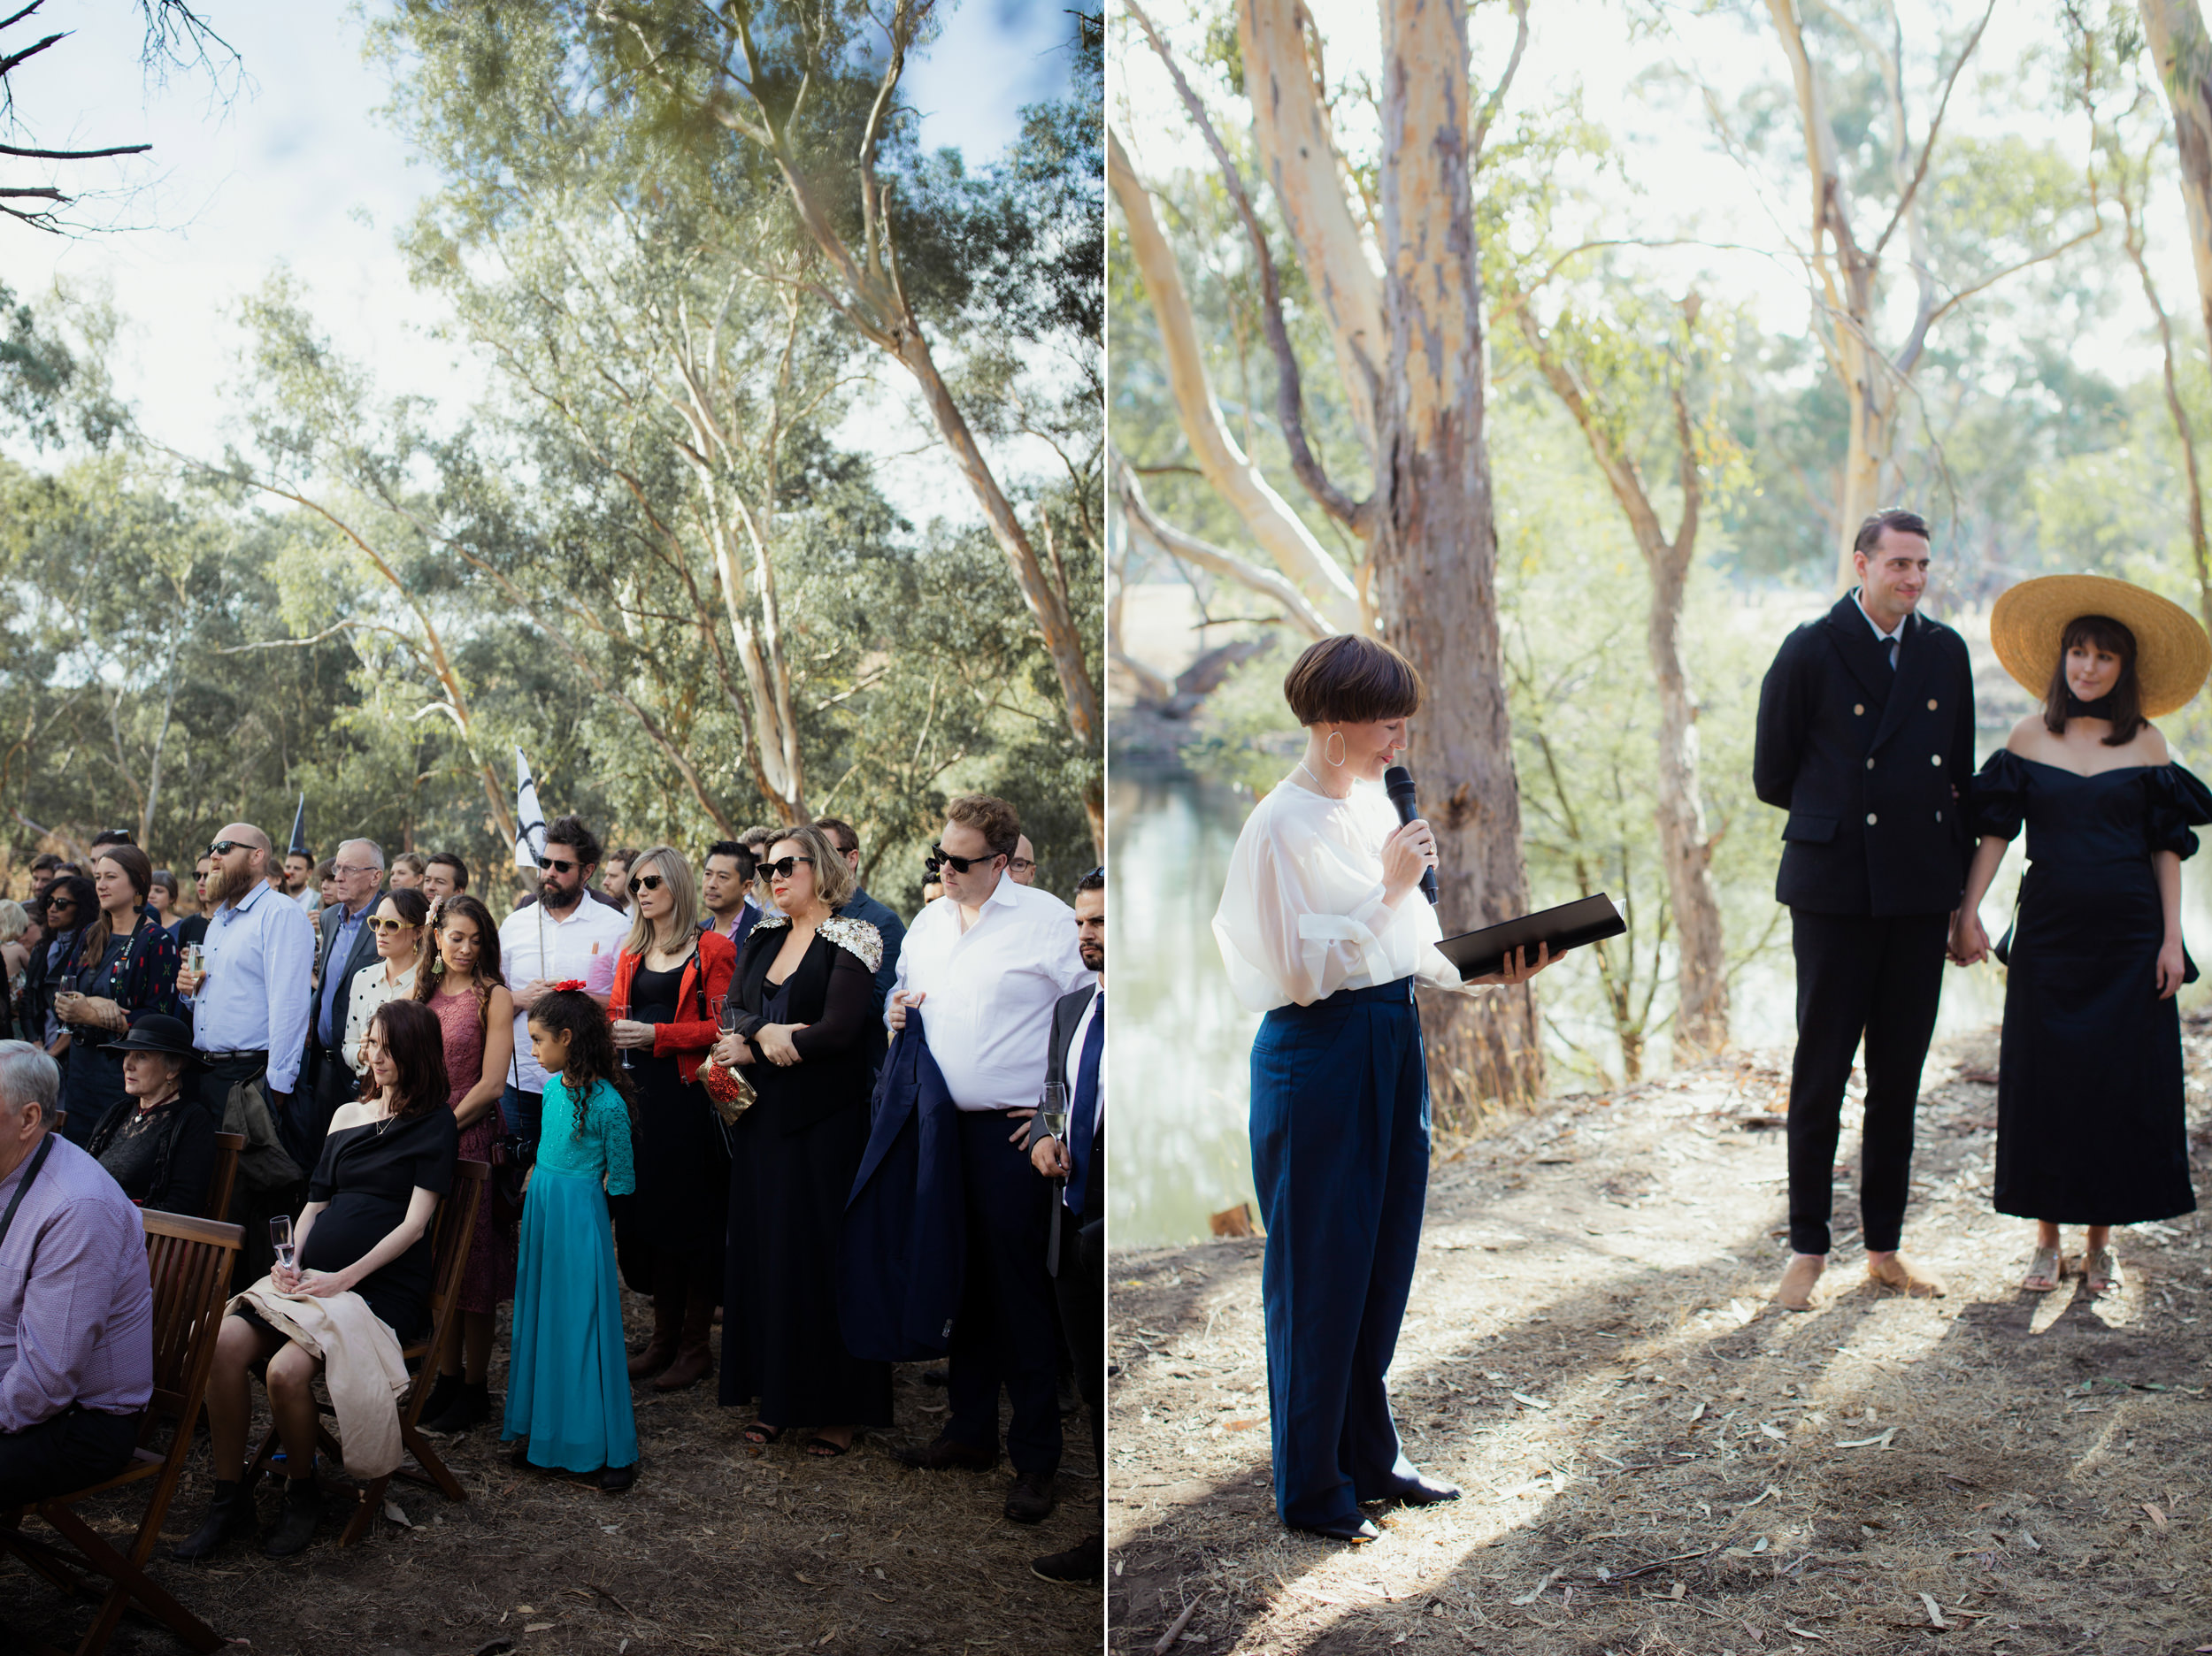 I-Got-You-Babe-Weddings-Claire-Dave-Trawol-VIC-Country-Property-Wedding104.JPG